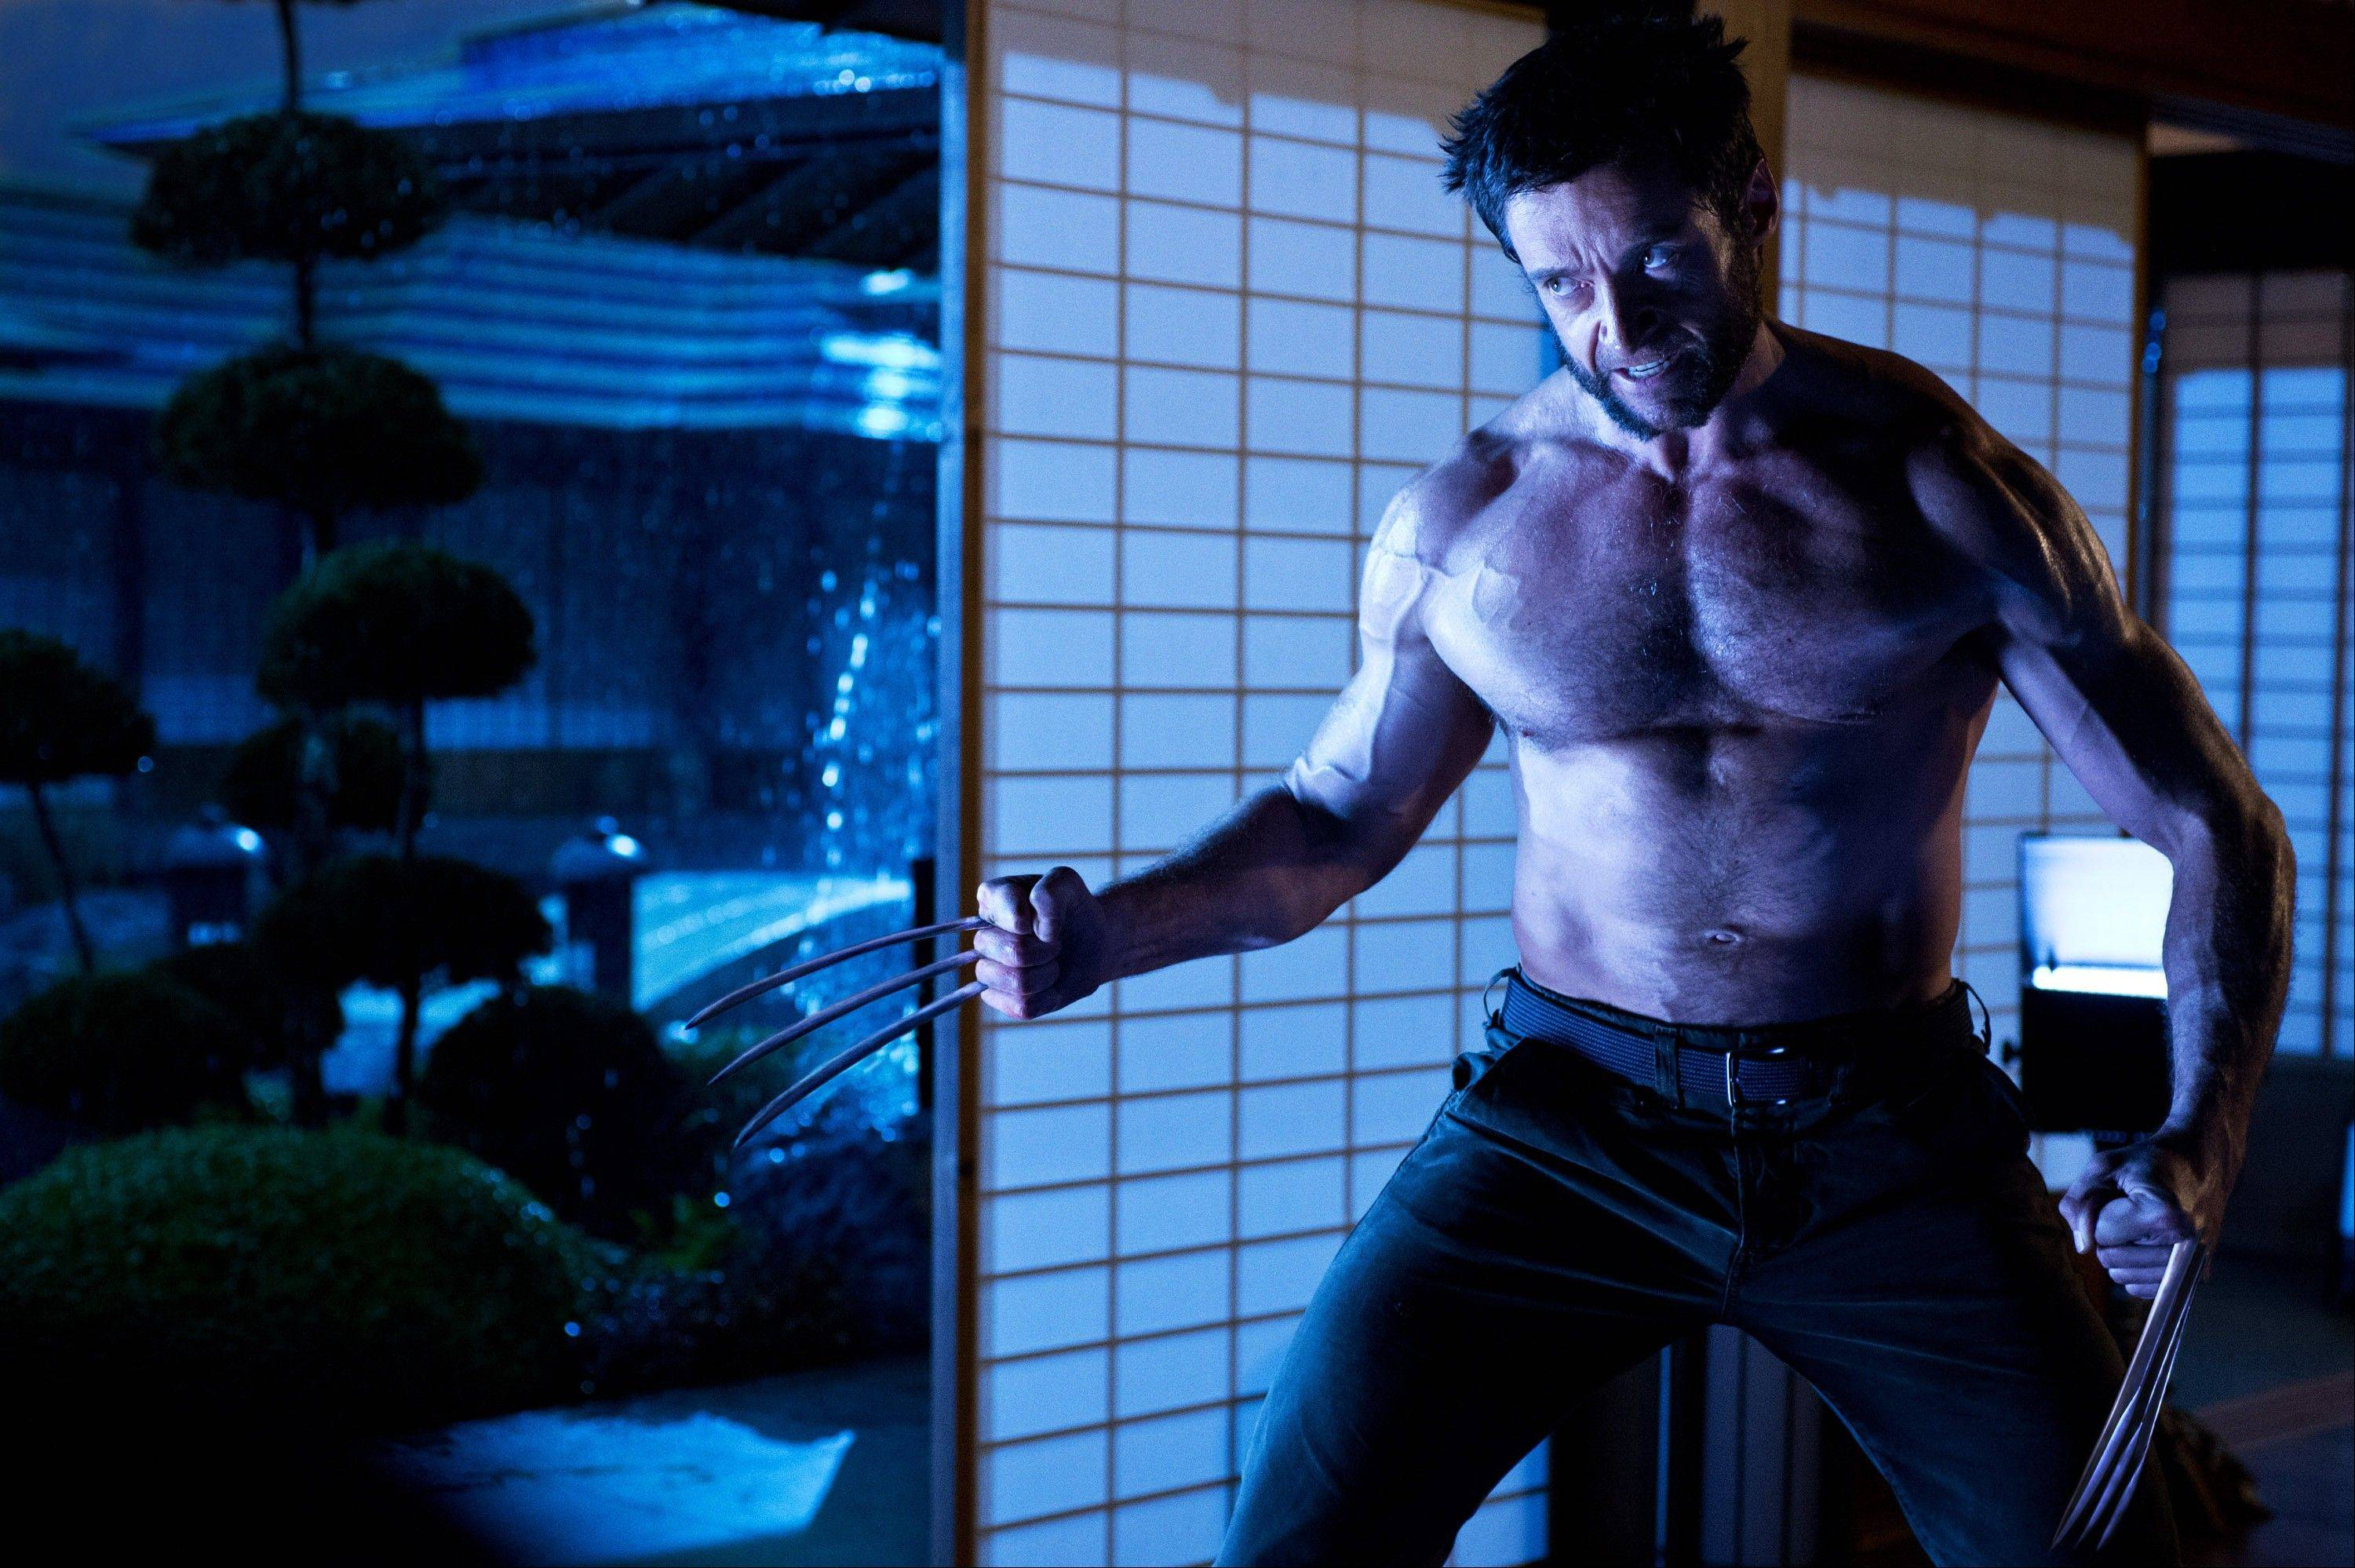 Hugh Jackman returns as Logan/Wolverine in the upcoming film �The Wolverine.�